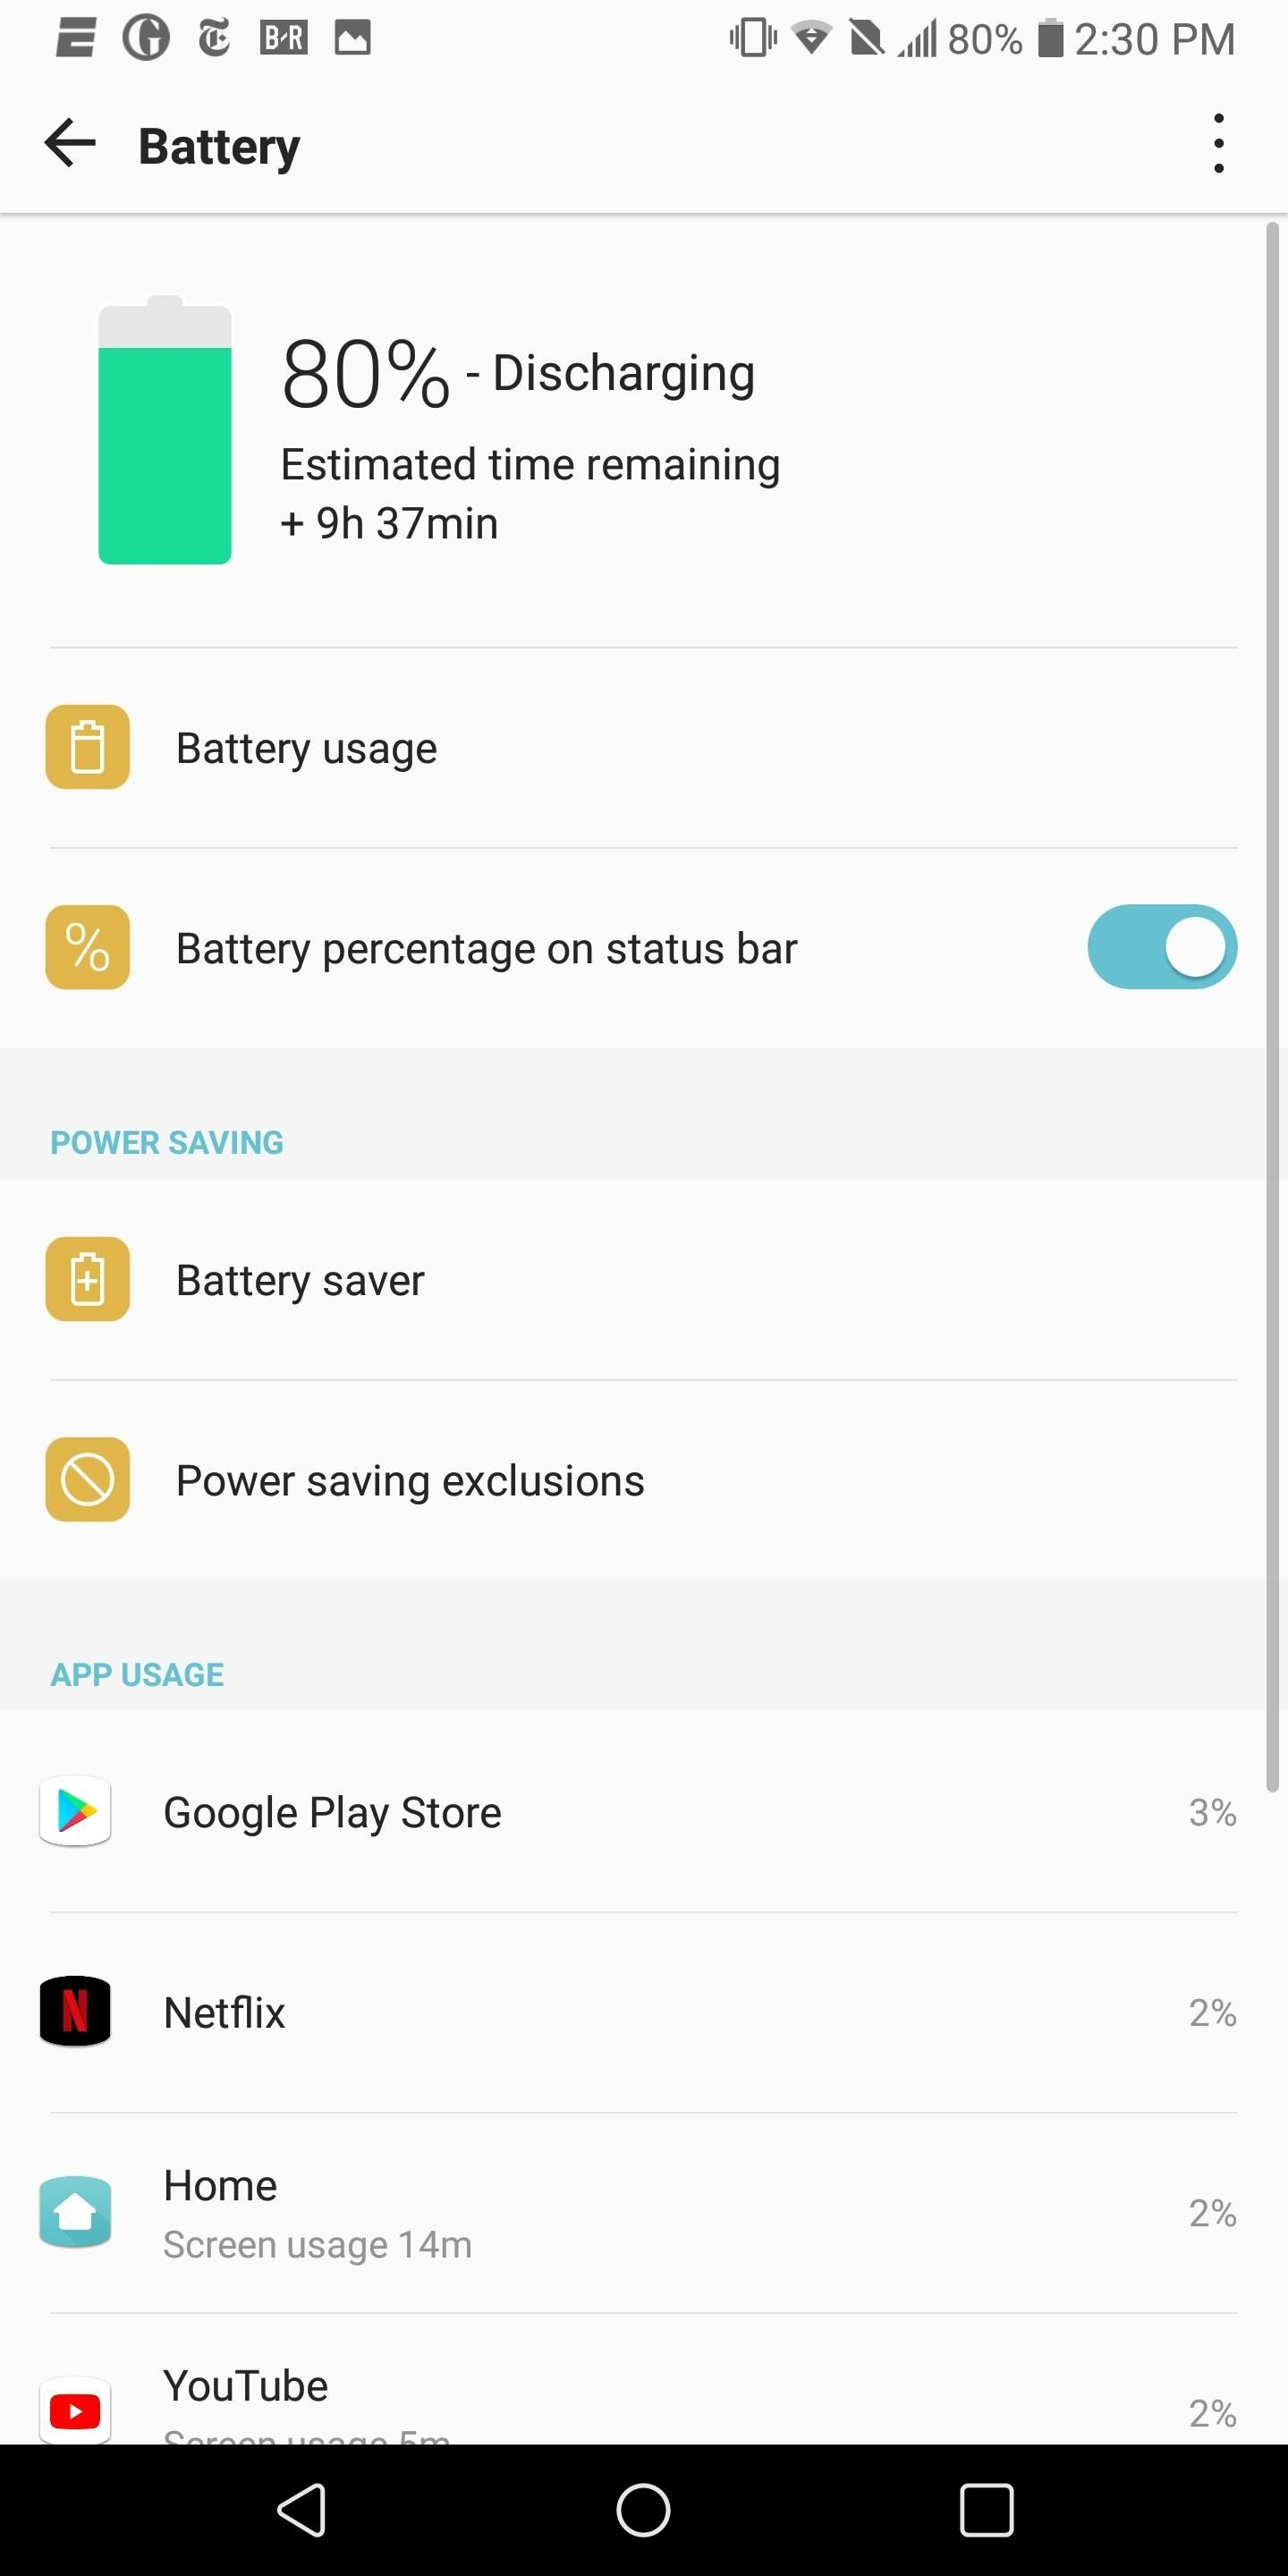 24 New Features & Changes the Android Oreo Update Gives Your LG V30